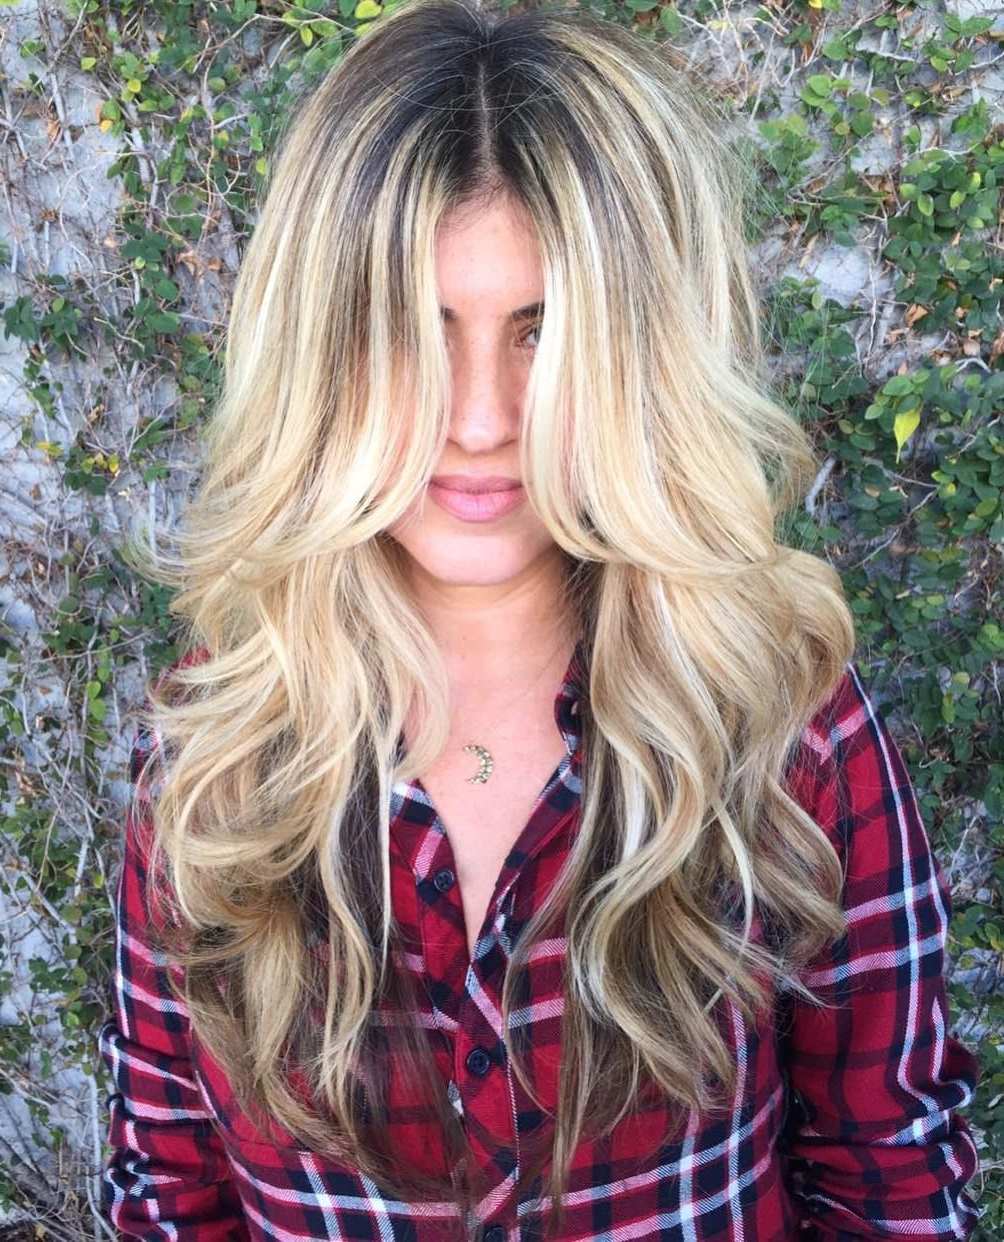 50 Prettiest Long Layered Haircuts With Bangs For 2020 Intended For 2018 Long Curtain Feathered Bangs Hairstyles (View 8 of 20)